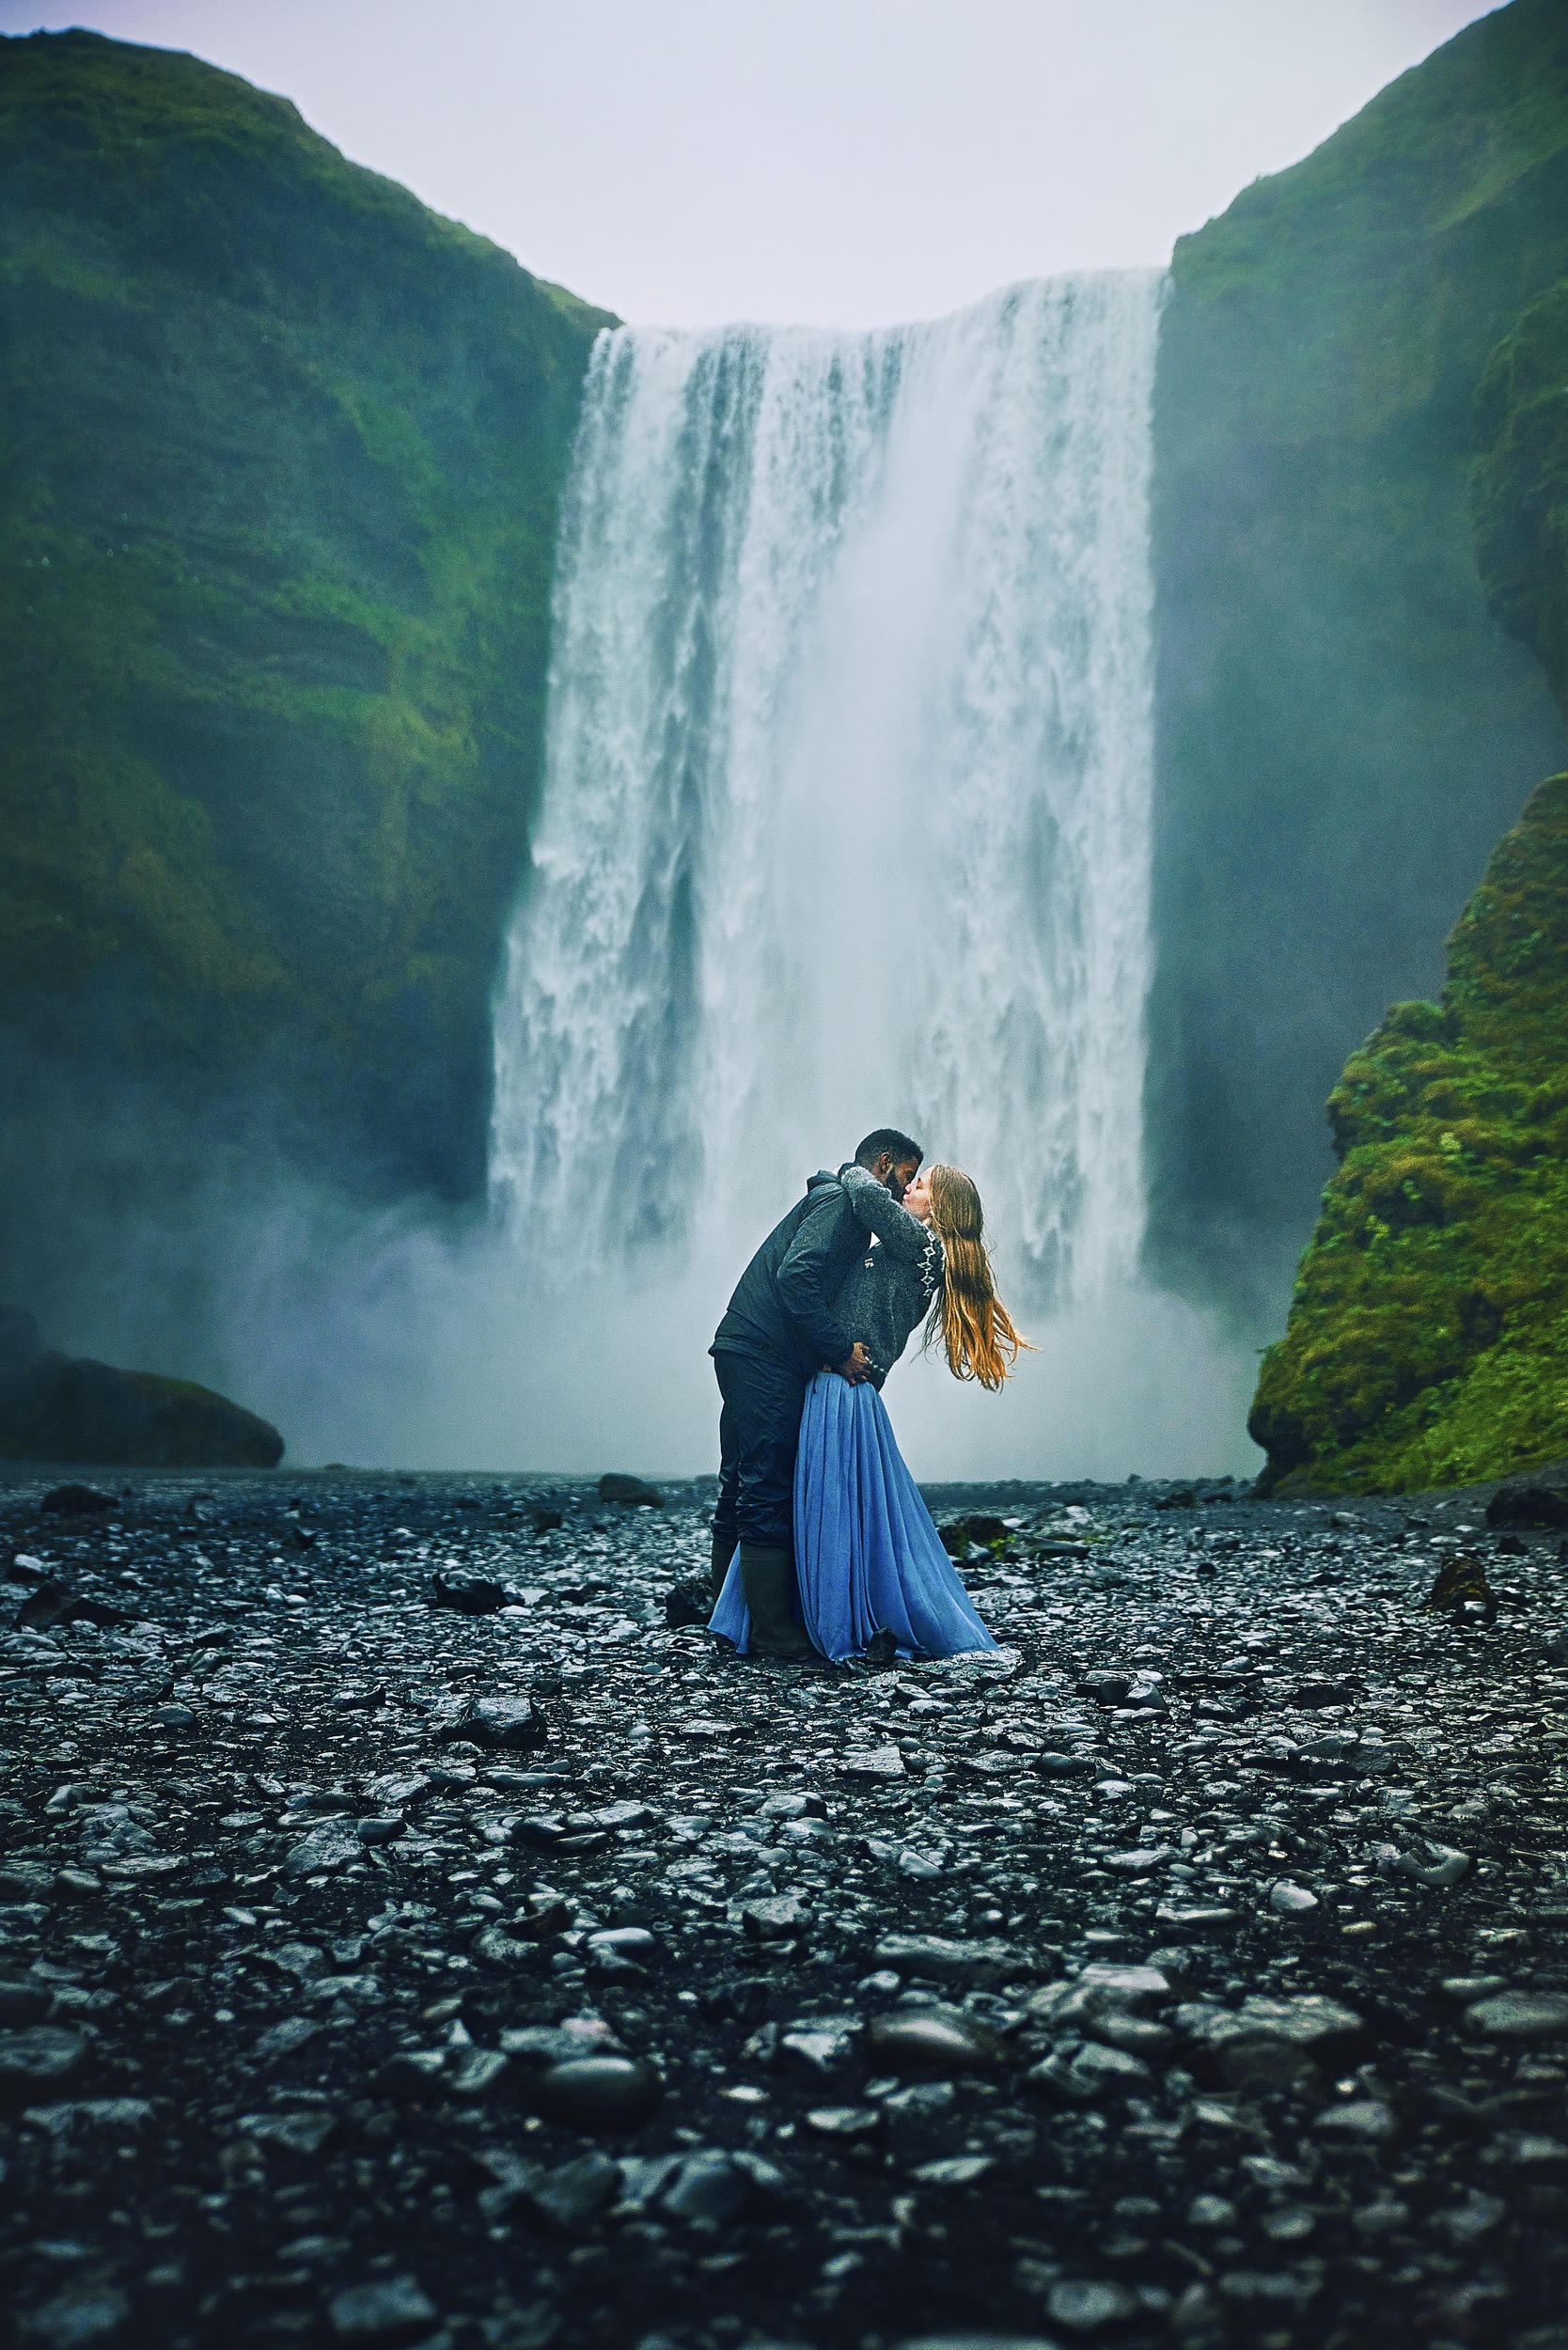 Photo of Terrence and Victoria by a waterfall in Iceland.